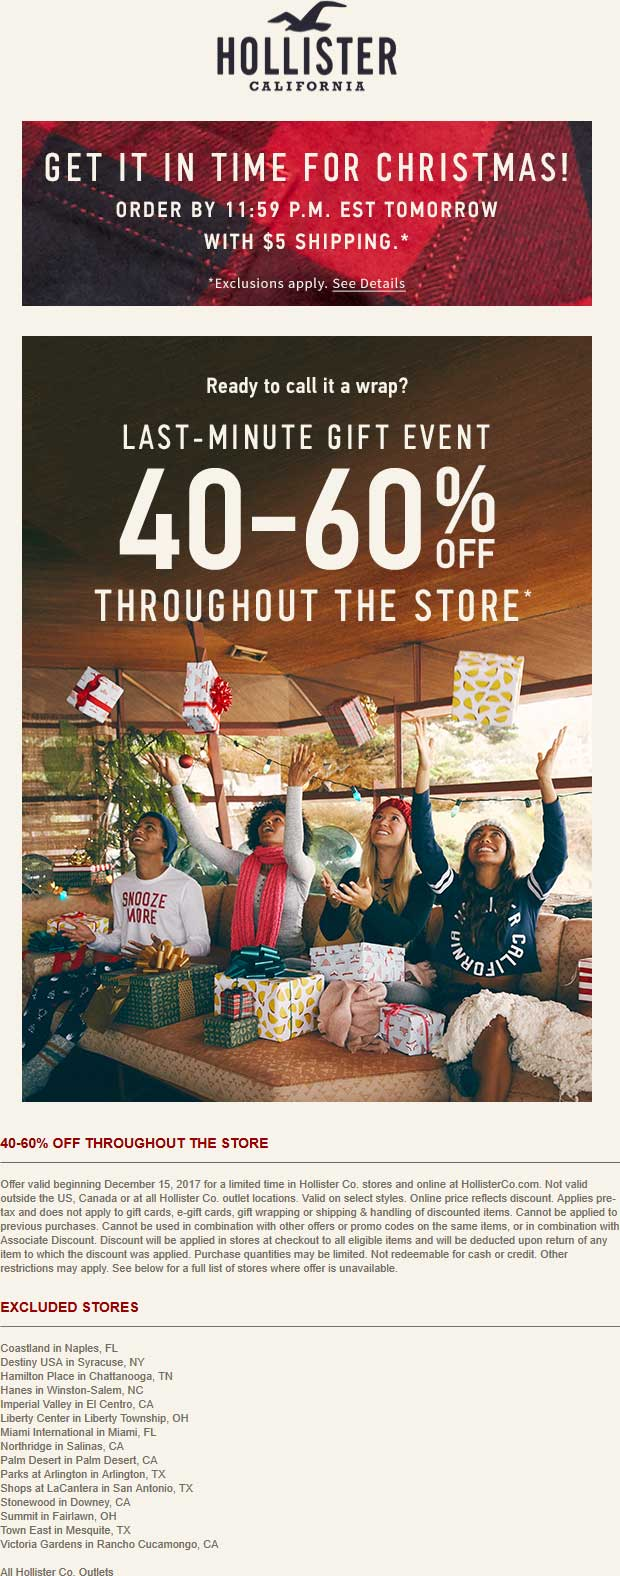 Hollister.com Promo Coupon 40-60% off at Hollister, ditto online